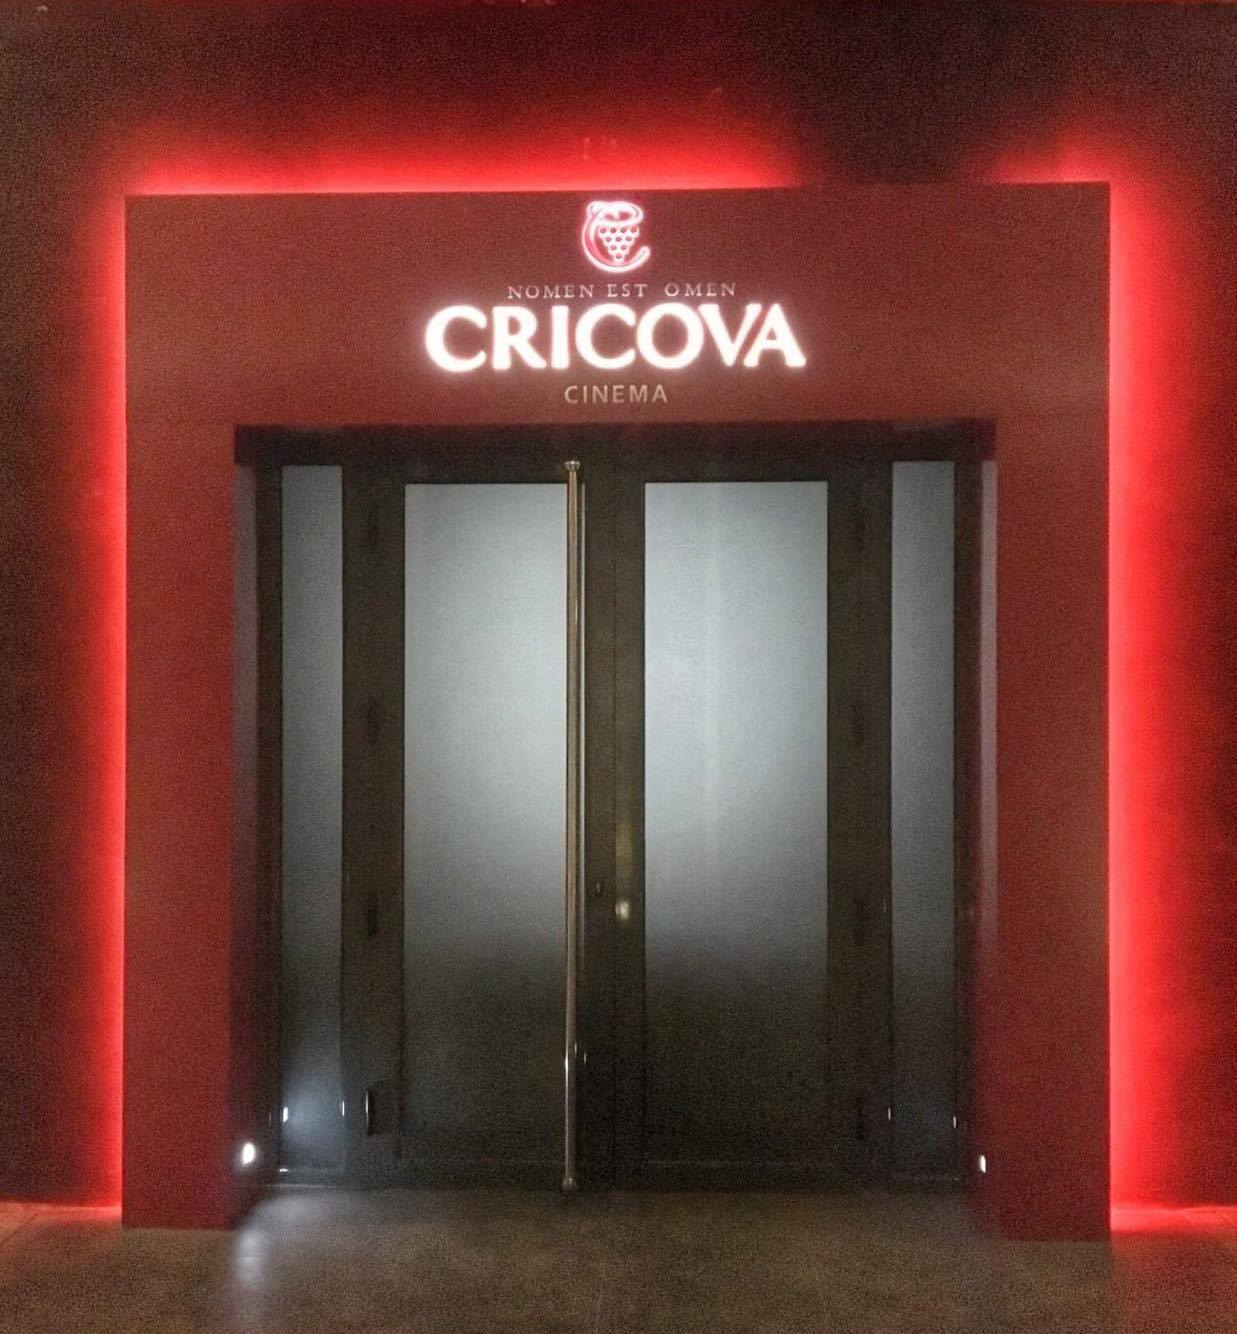 Cricova Winery The Second Largest Wine Cellar In The